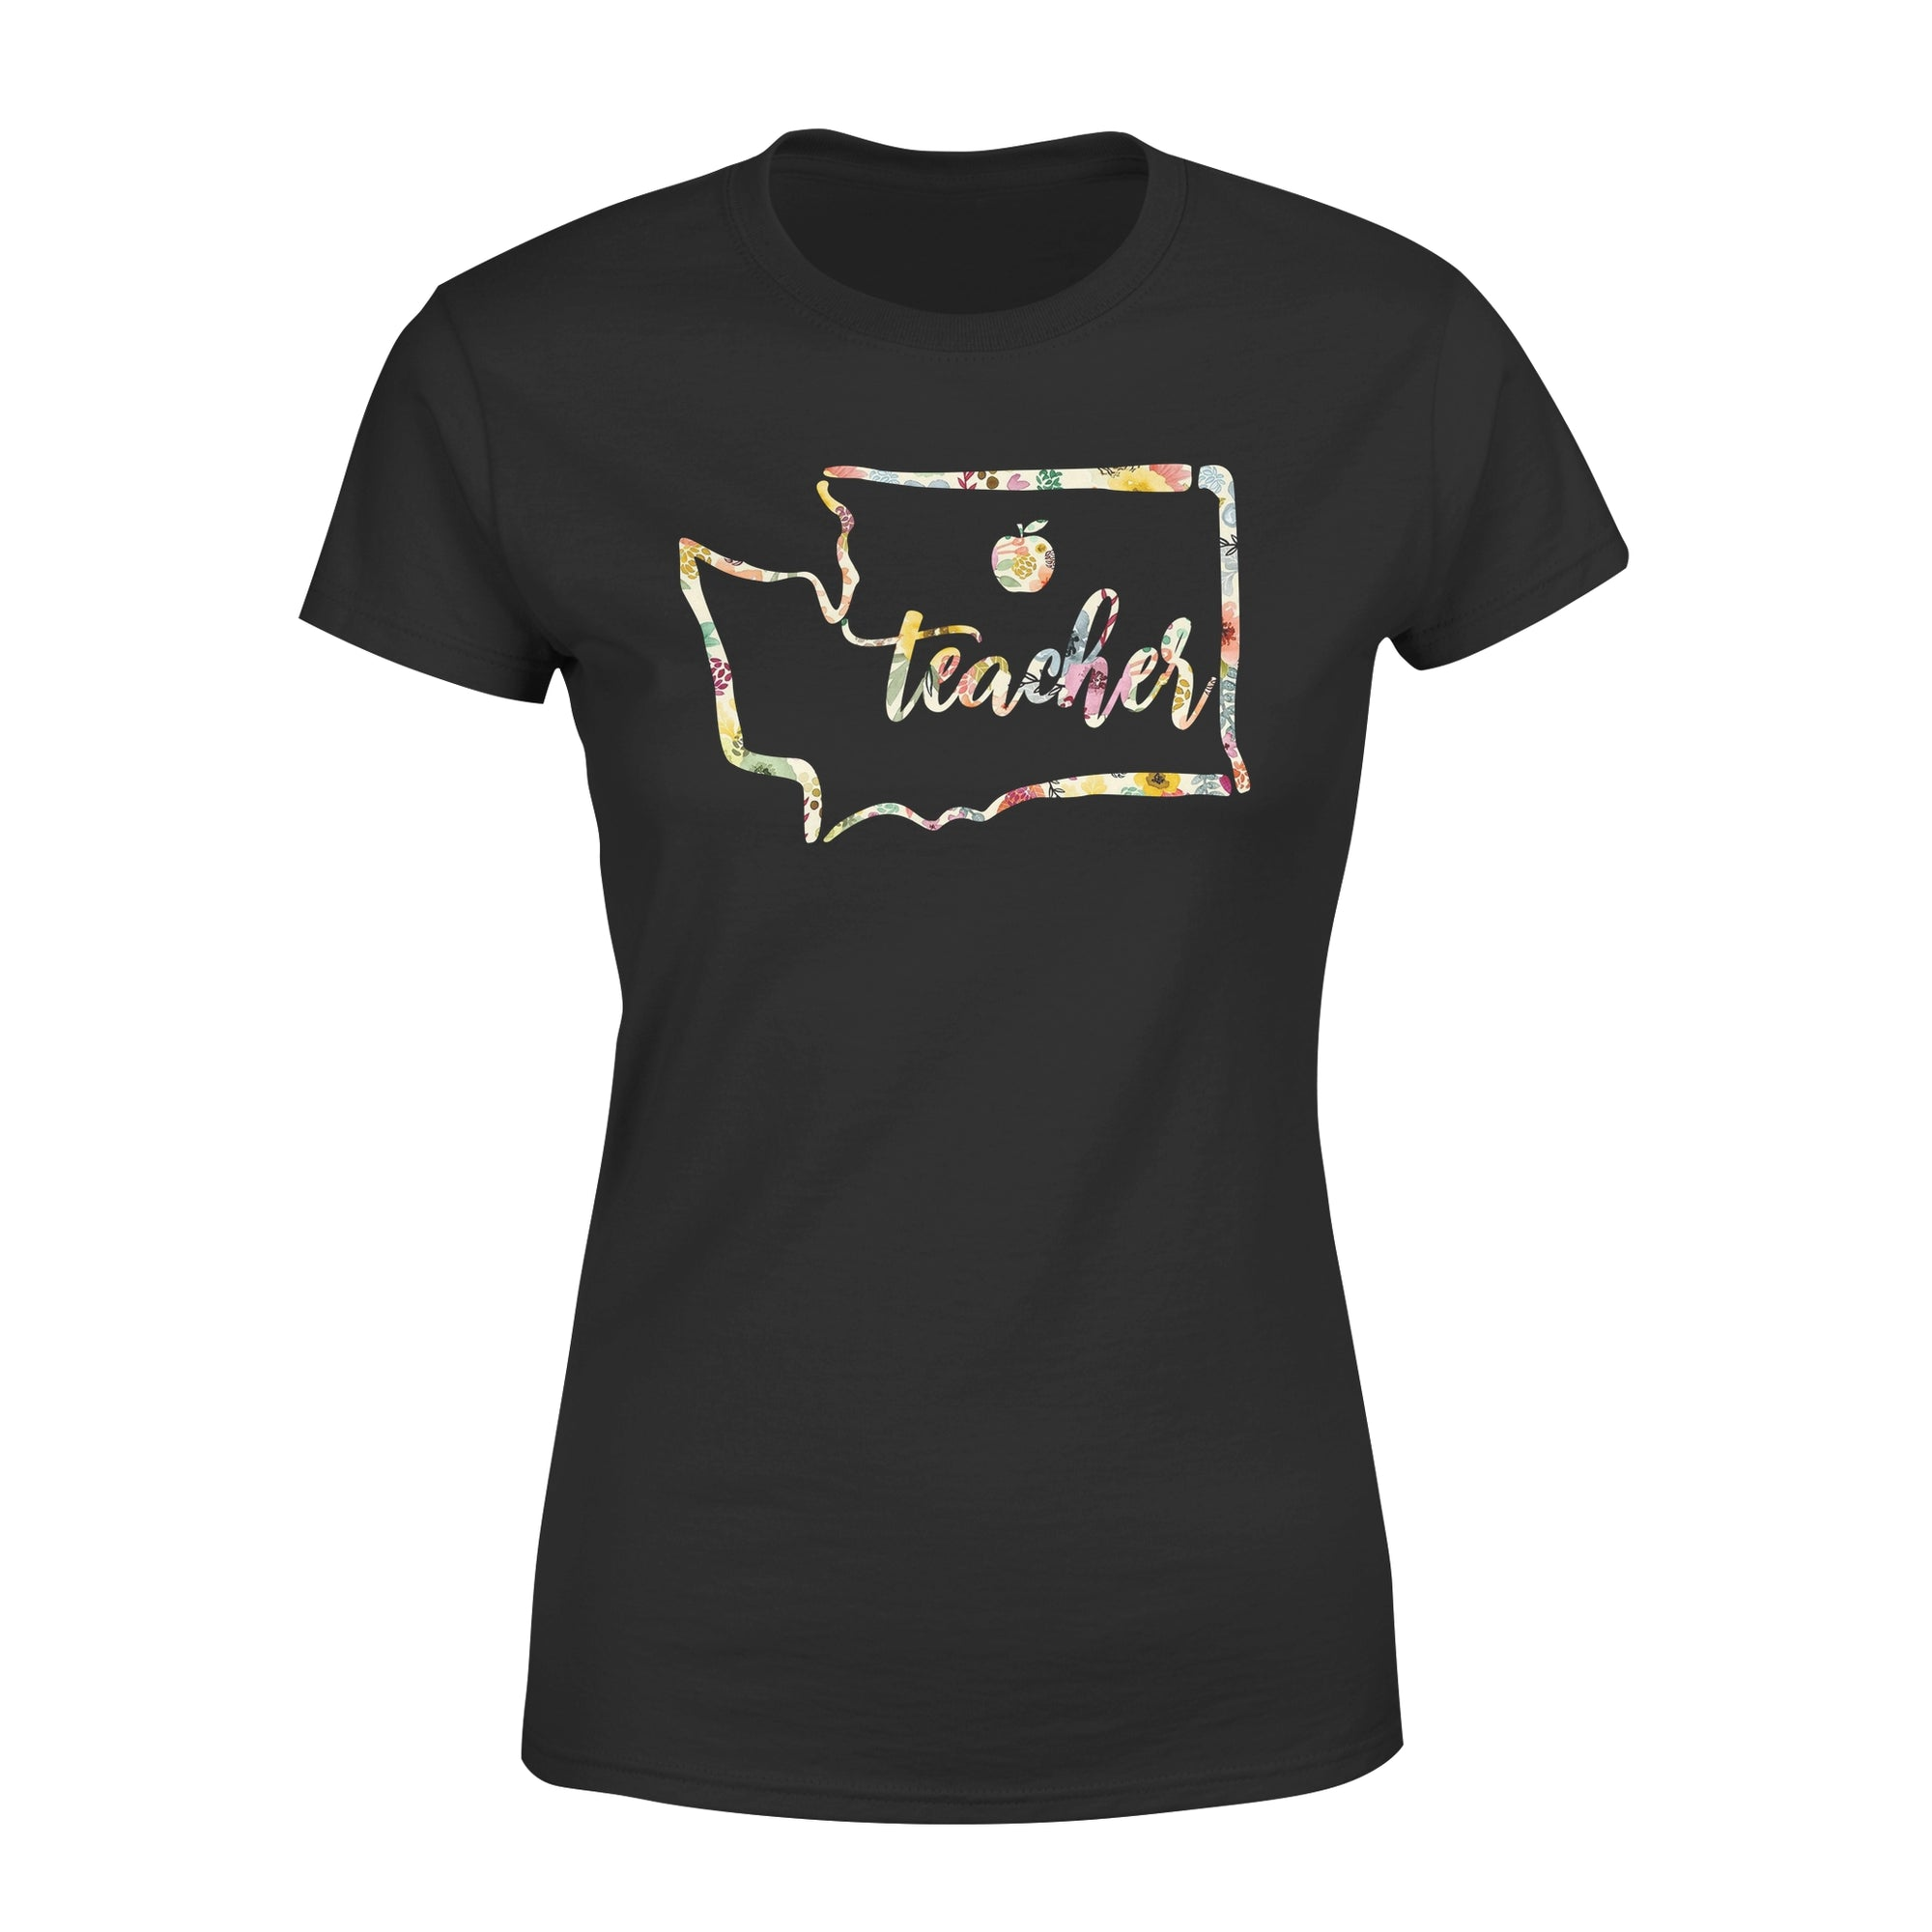 VIRA washington state map Premium Women's Tee for awesome teachers